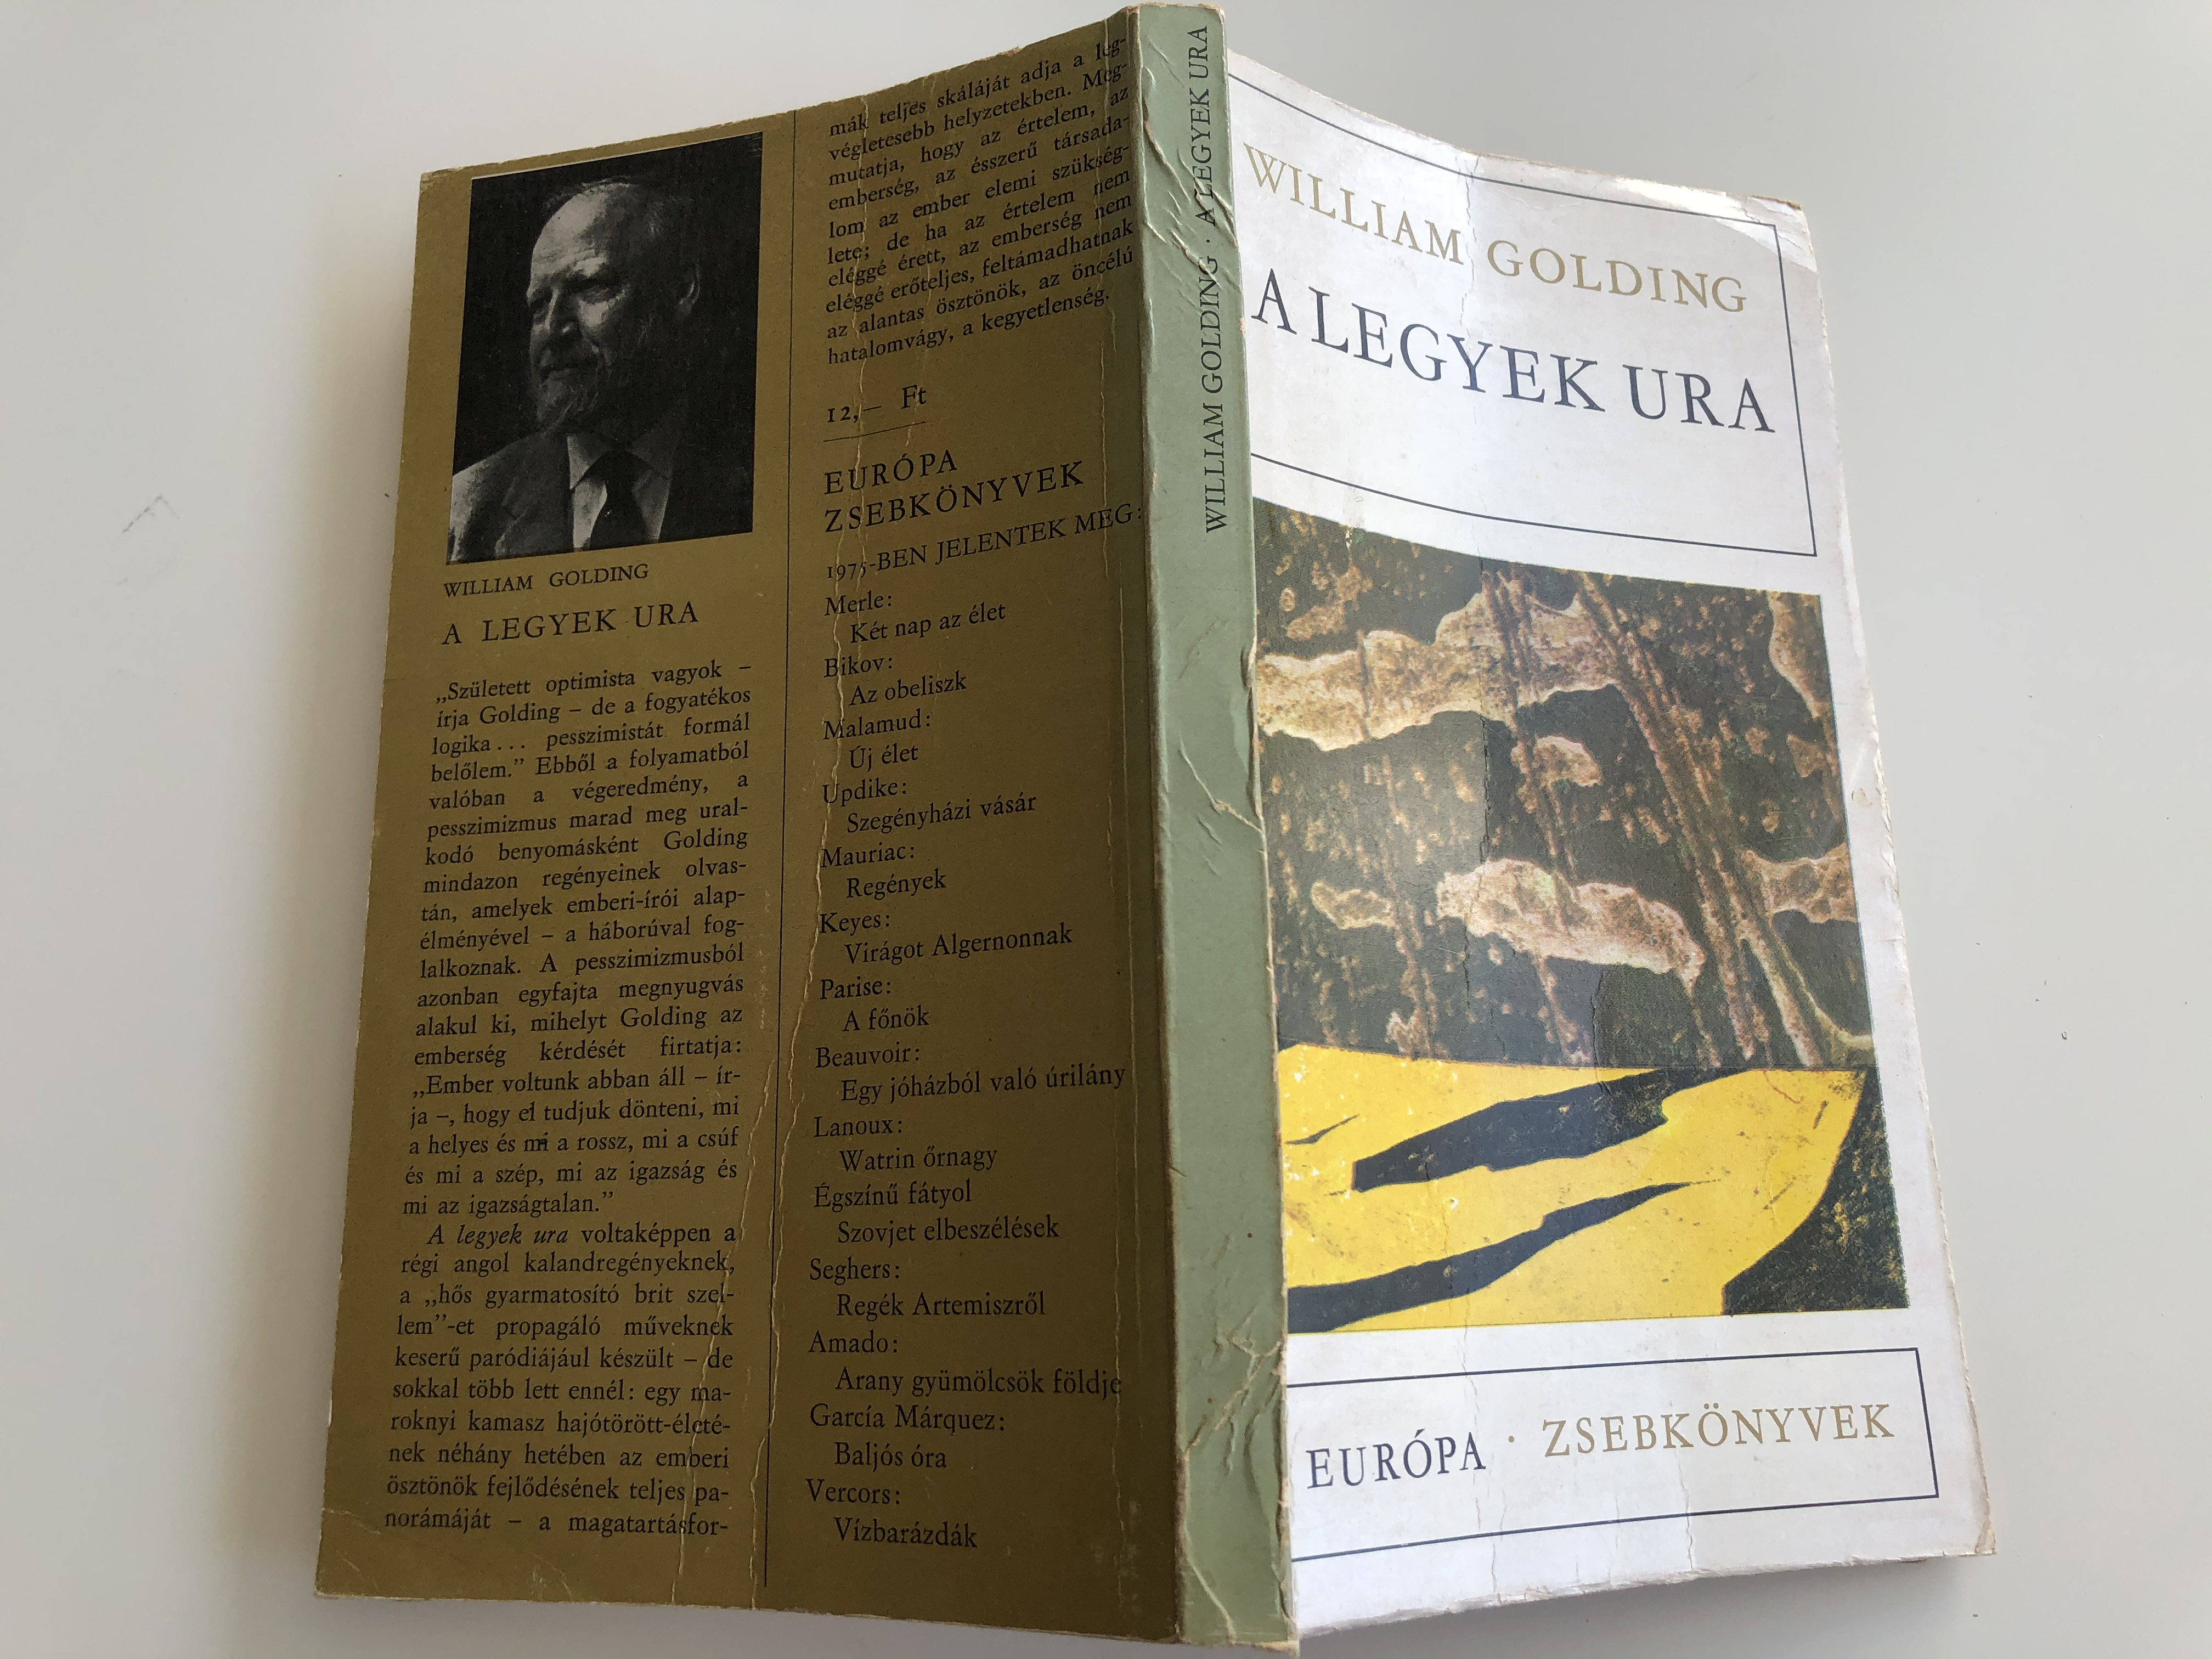 a-legyek-ura-by-william-golding-hungarian-edition-of-lord-of-the-files-9.jpg